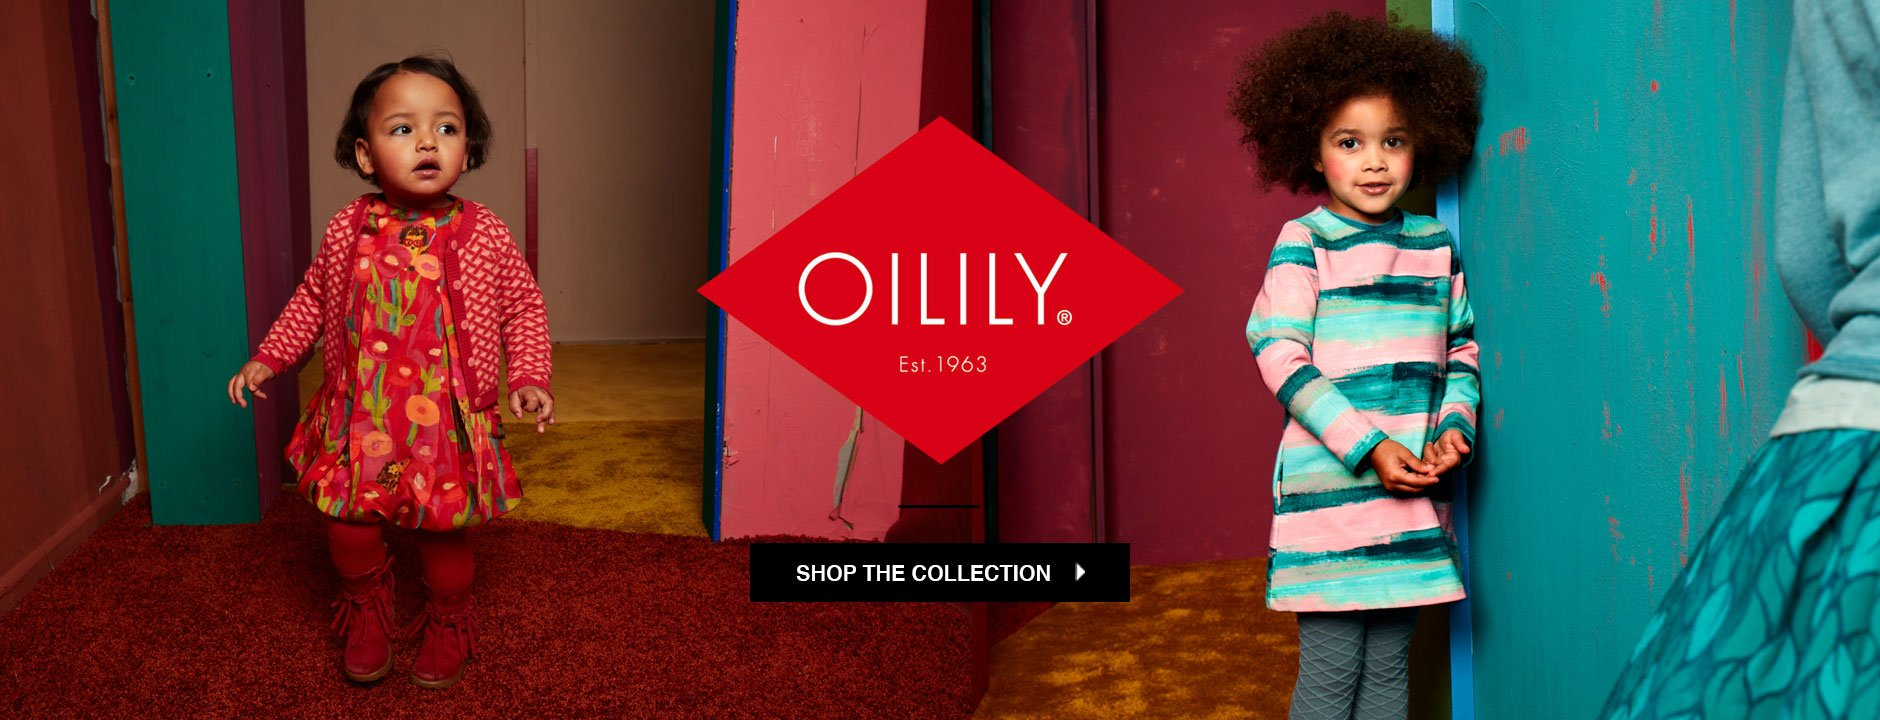 Oilily autumn, winter 2017 collection